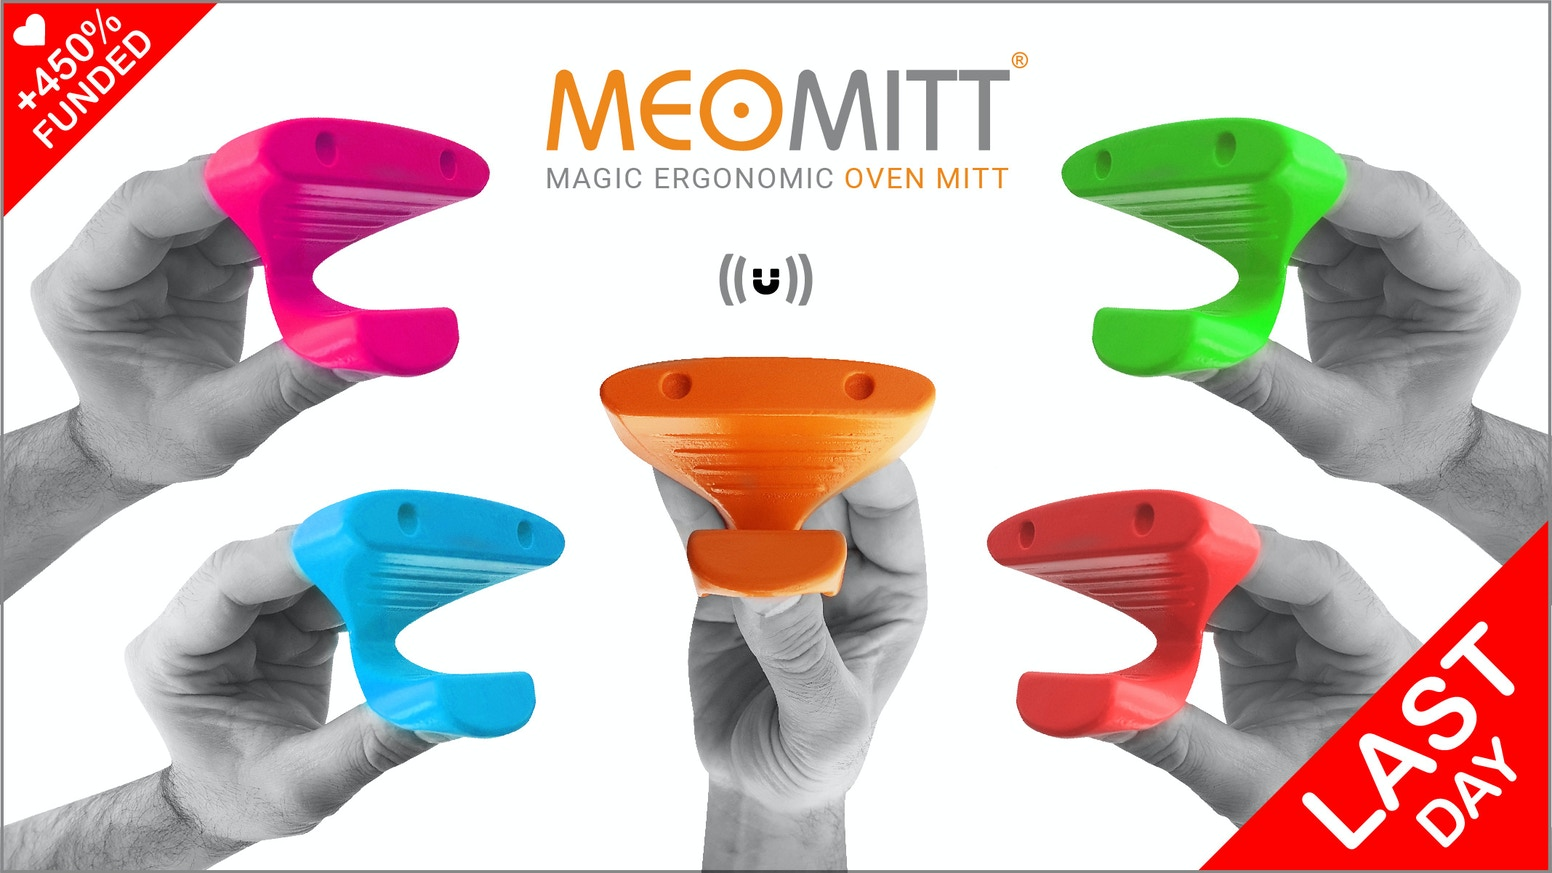 MeoMitt is the world's first magnetic, ergonomic & multifunctional oven mitt. It's the best way to protect yourself from hot dishes.